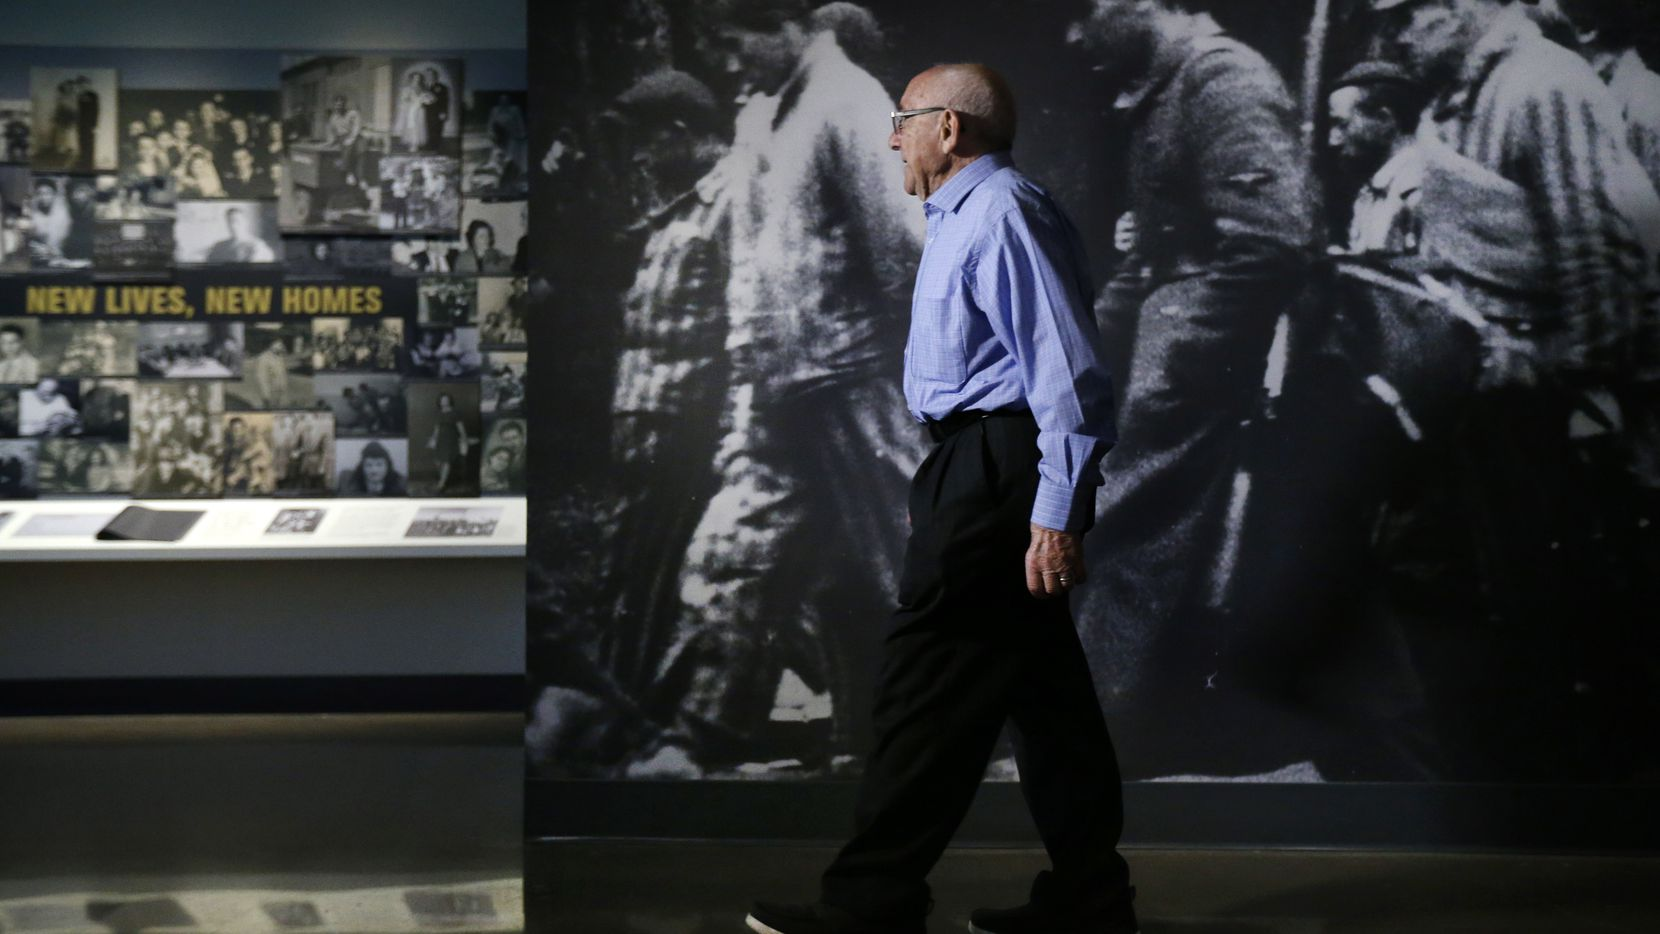 Holocaust survivor Max Glauben walks past a life-sized photo of prisoners on a death march from Dachau, Germany, as he toured the new Dallas Holocaust and Human Rights Museum in downtown Dallas.